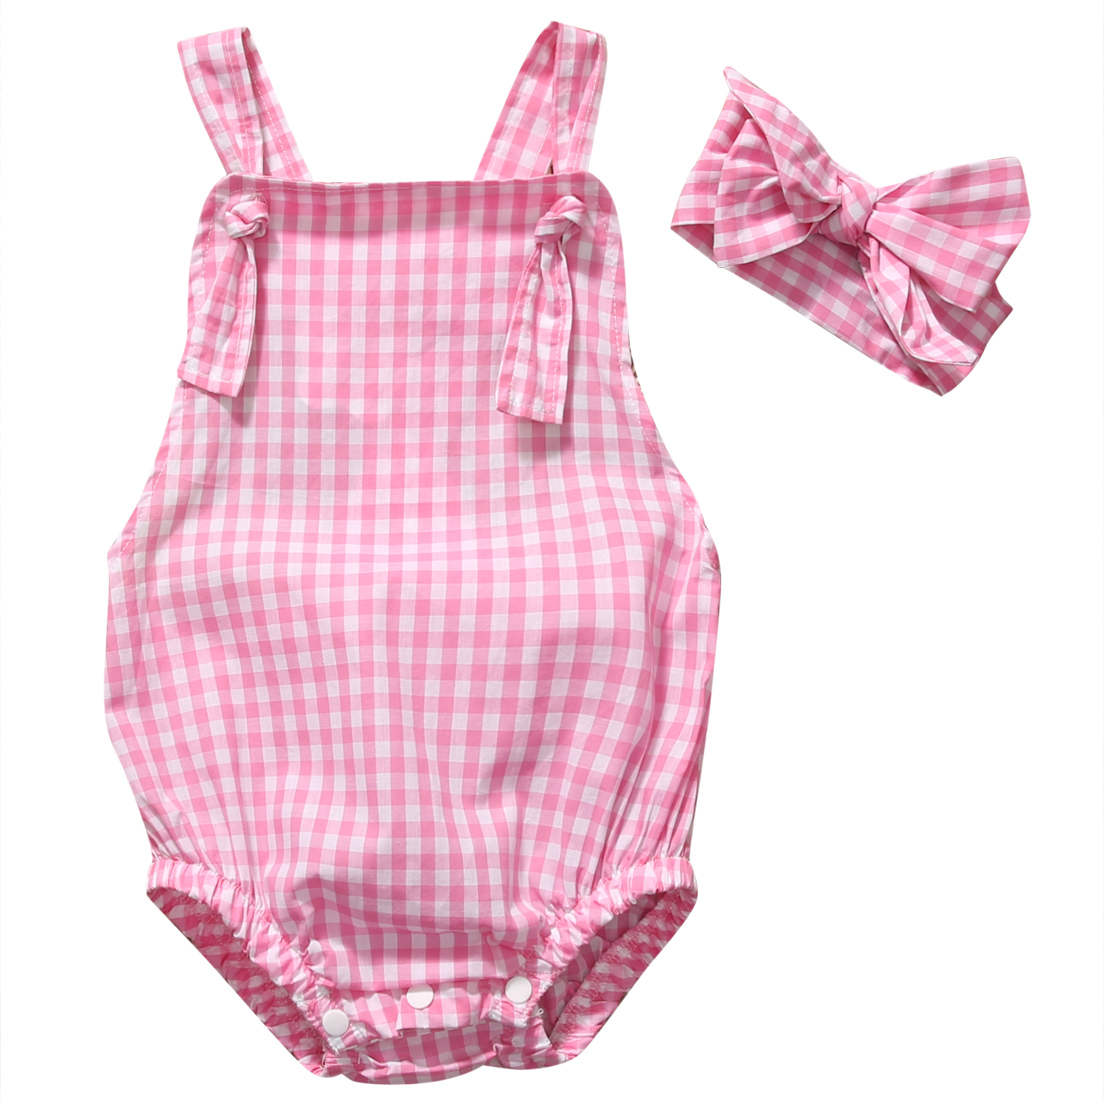 2017 pink plaid romper clothes cute newborn baby girls summer sleeveless halter bebes jumpsuit. Black Bedroom Furniture Sets. Home Design Ideas